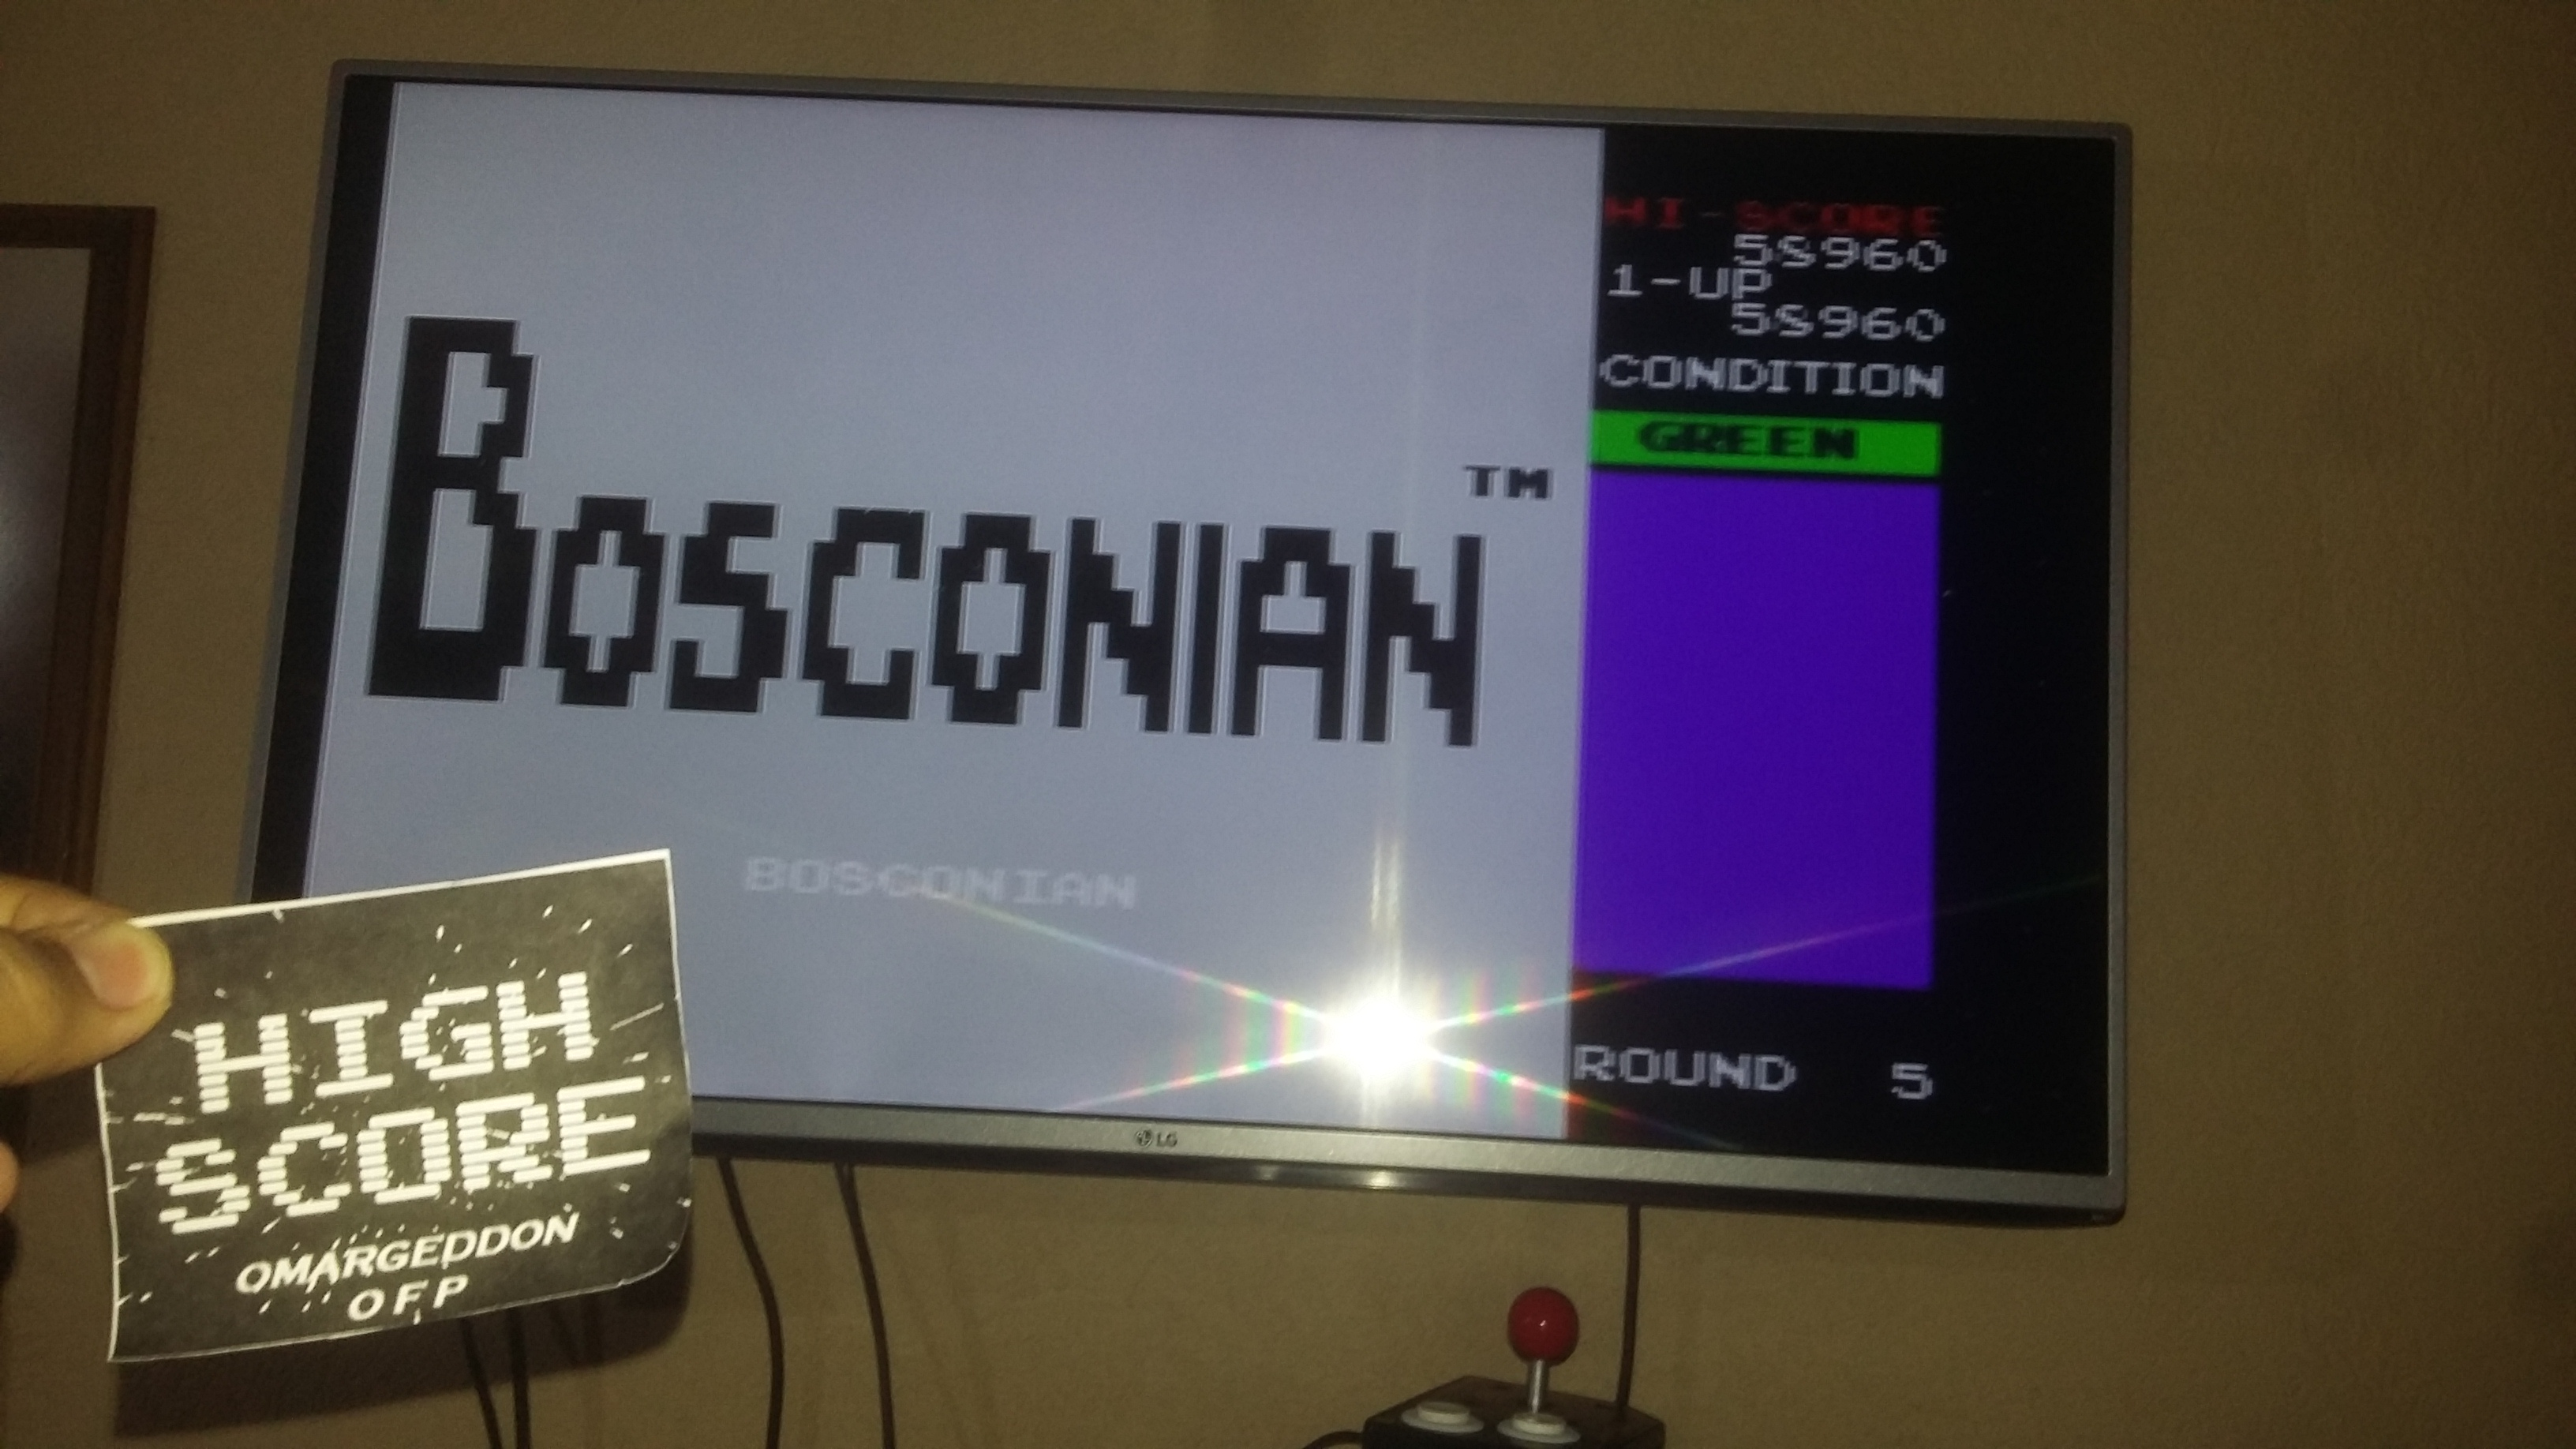 Bosconian 58,960 points